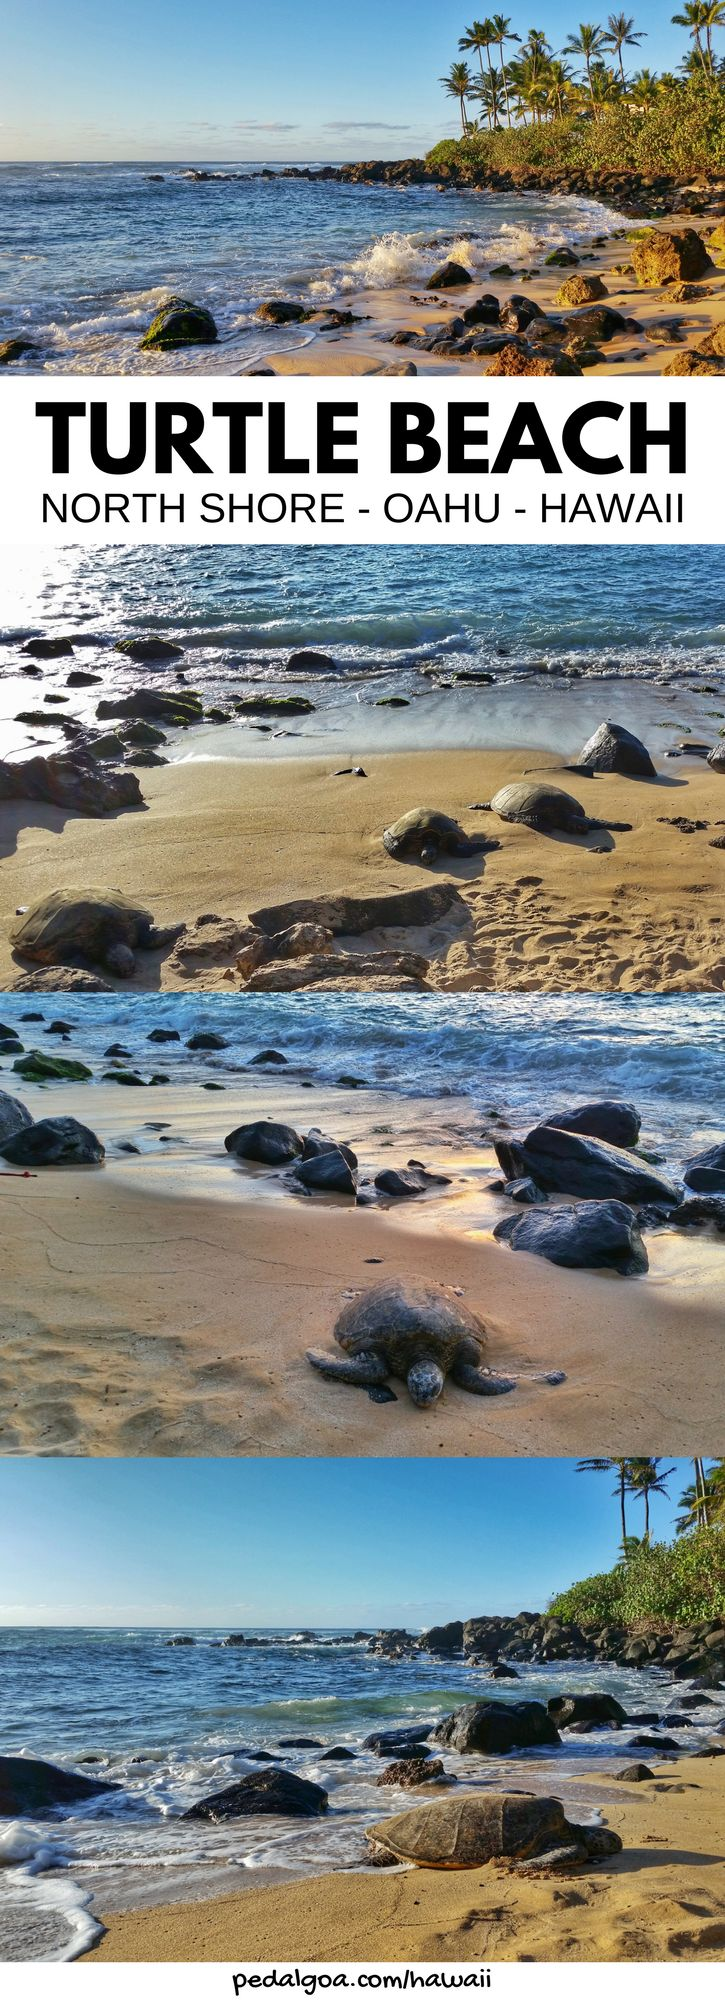 For where to see turtles on Oahu